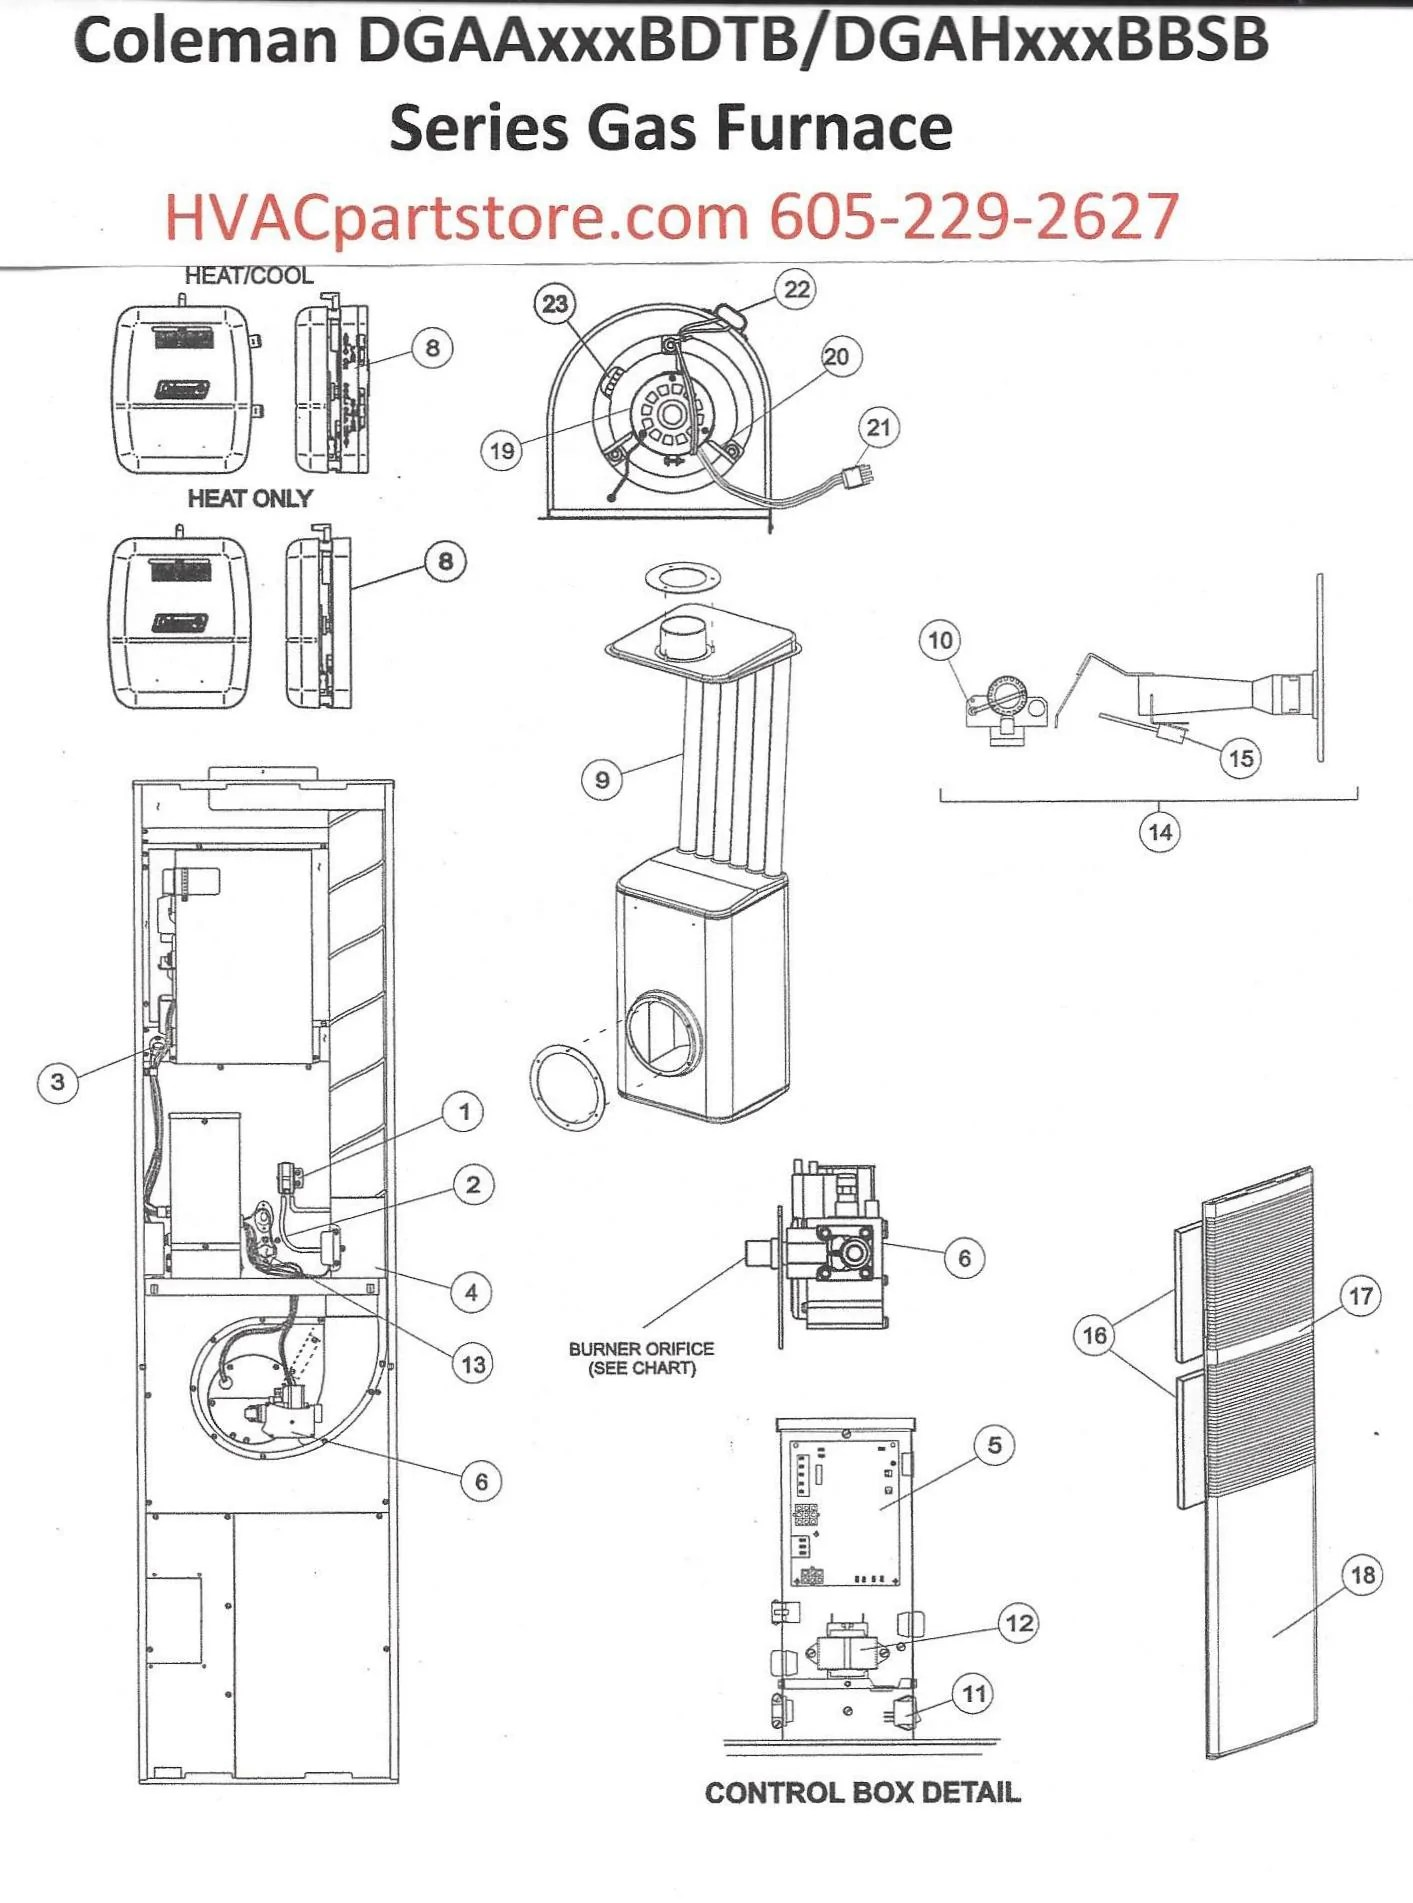 click here to view a manual for the dgaa056bdtb which includes wiring diagrams  [ 1413 x 1903 Pixel ]